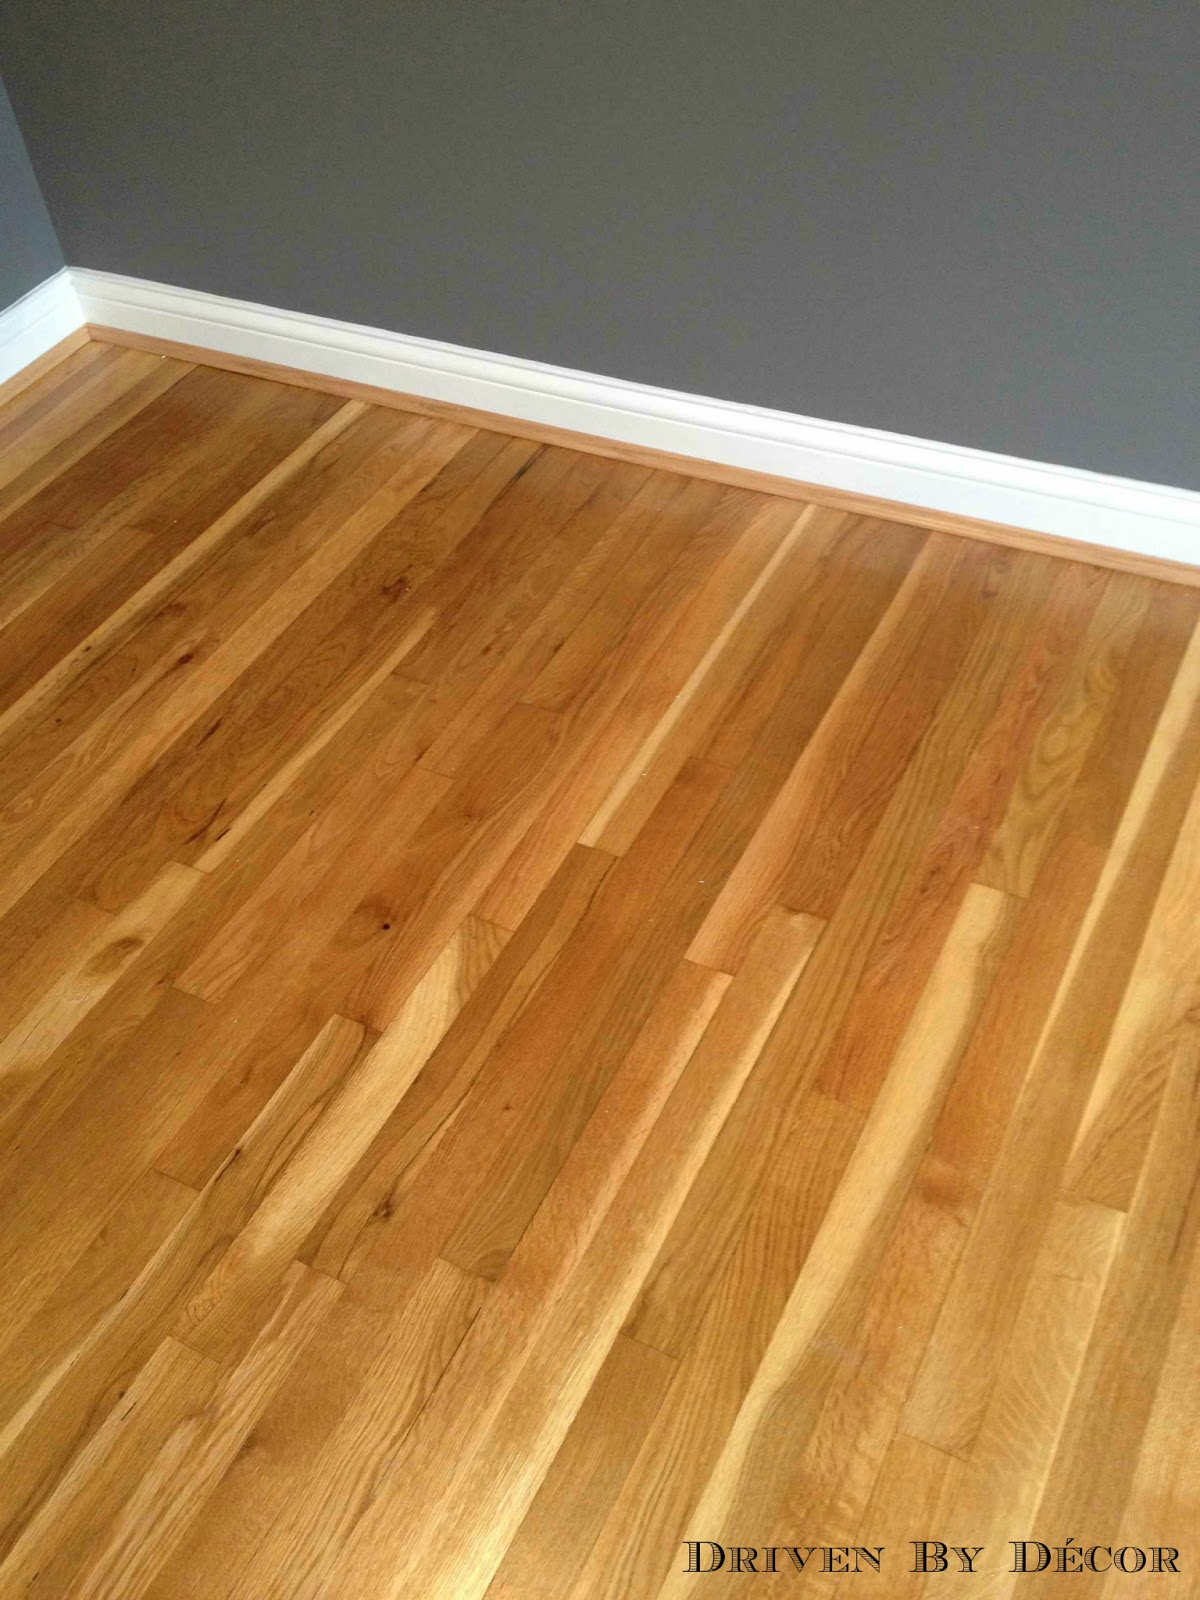 Hardwood floor colors flooring ideas home for Hardwood floor colors